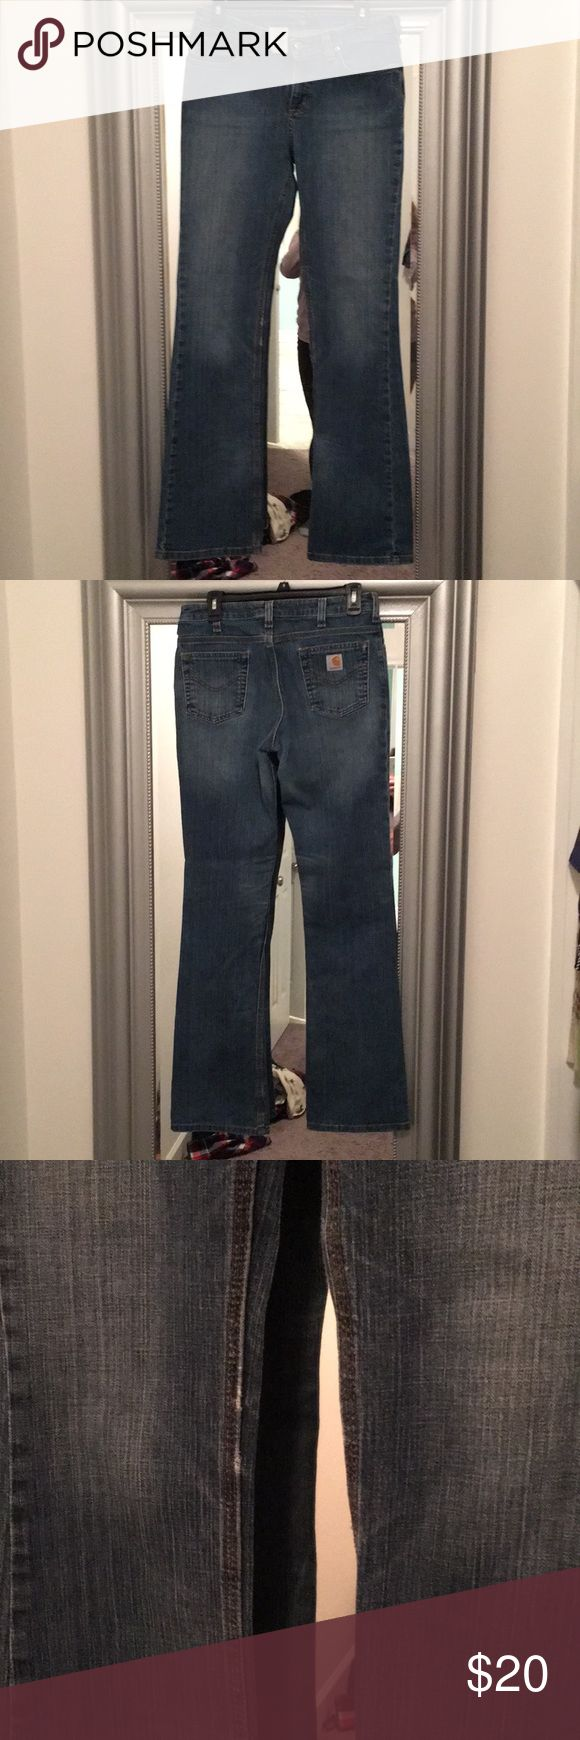 Carhartt boot cut jeans Boot cut carhartt jeans size 6x34. No stains but does have some wearing along inside seam. 8/10 Carhartt Jeans Boot Cut